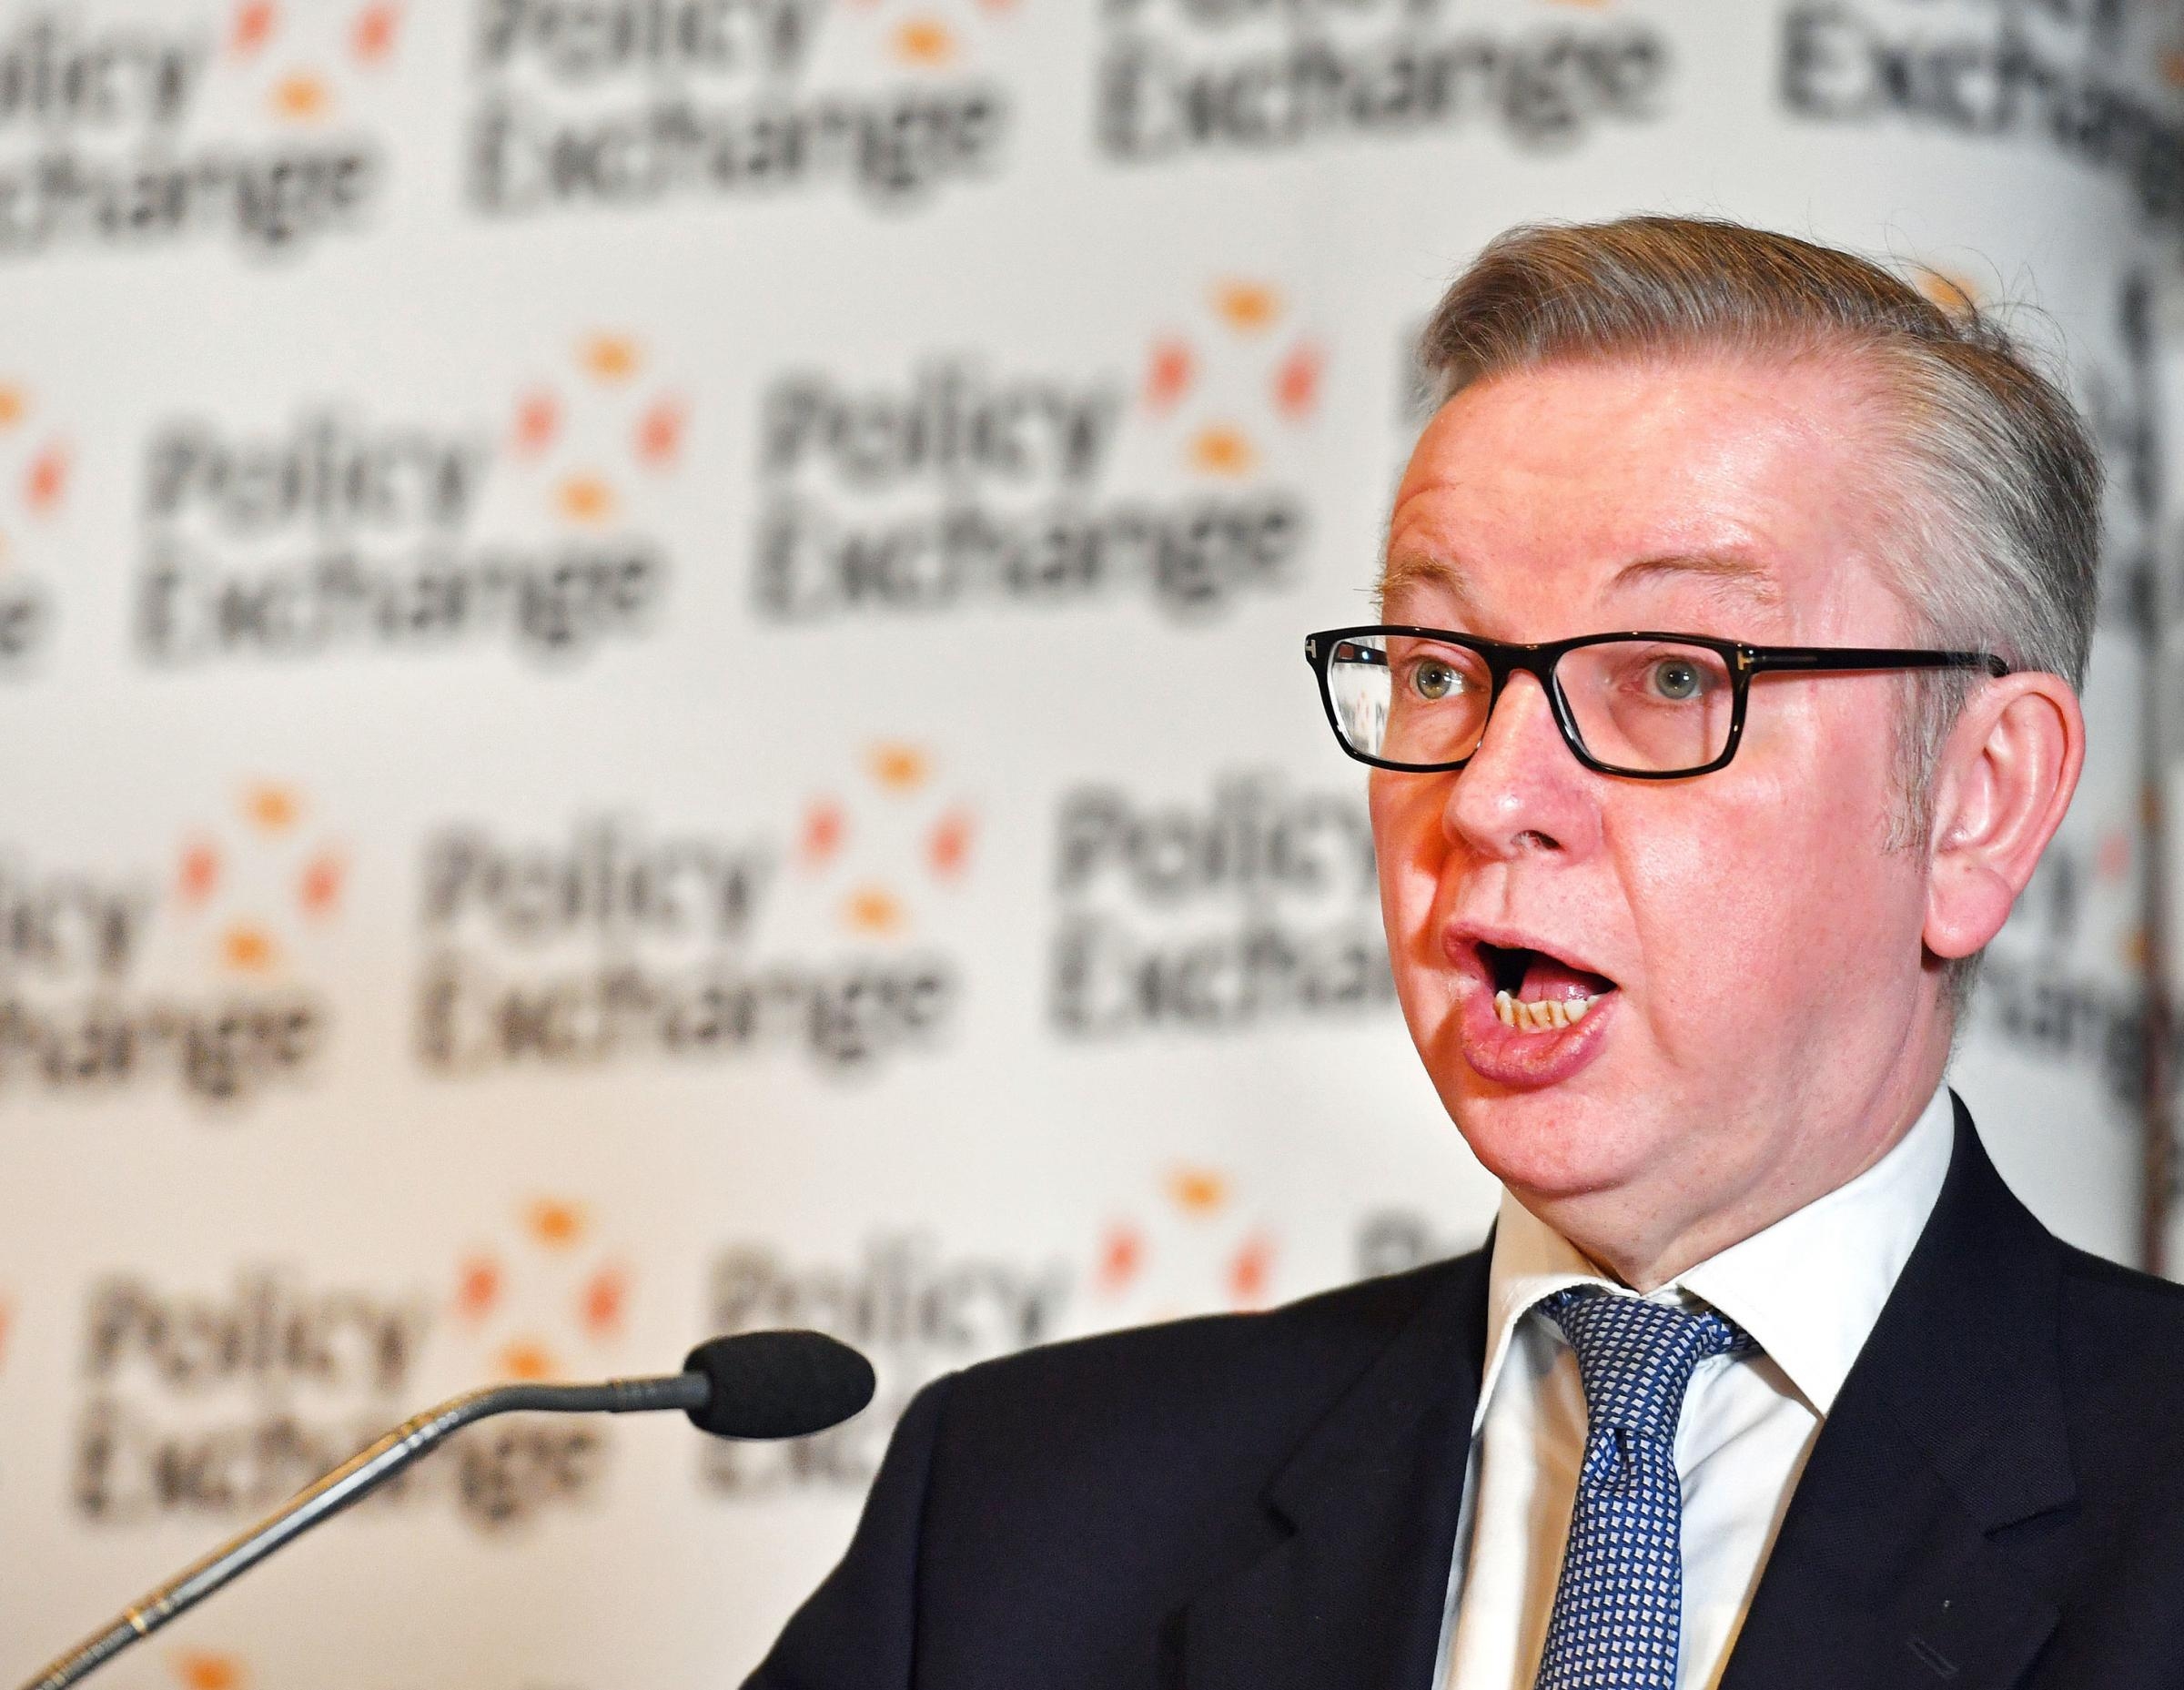 Micheal Gove said the bill will reward farmers who 'protect our environment'